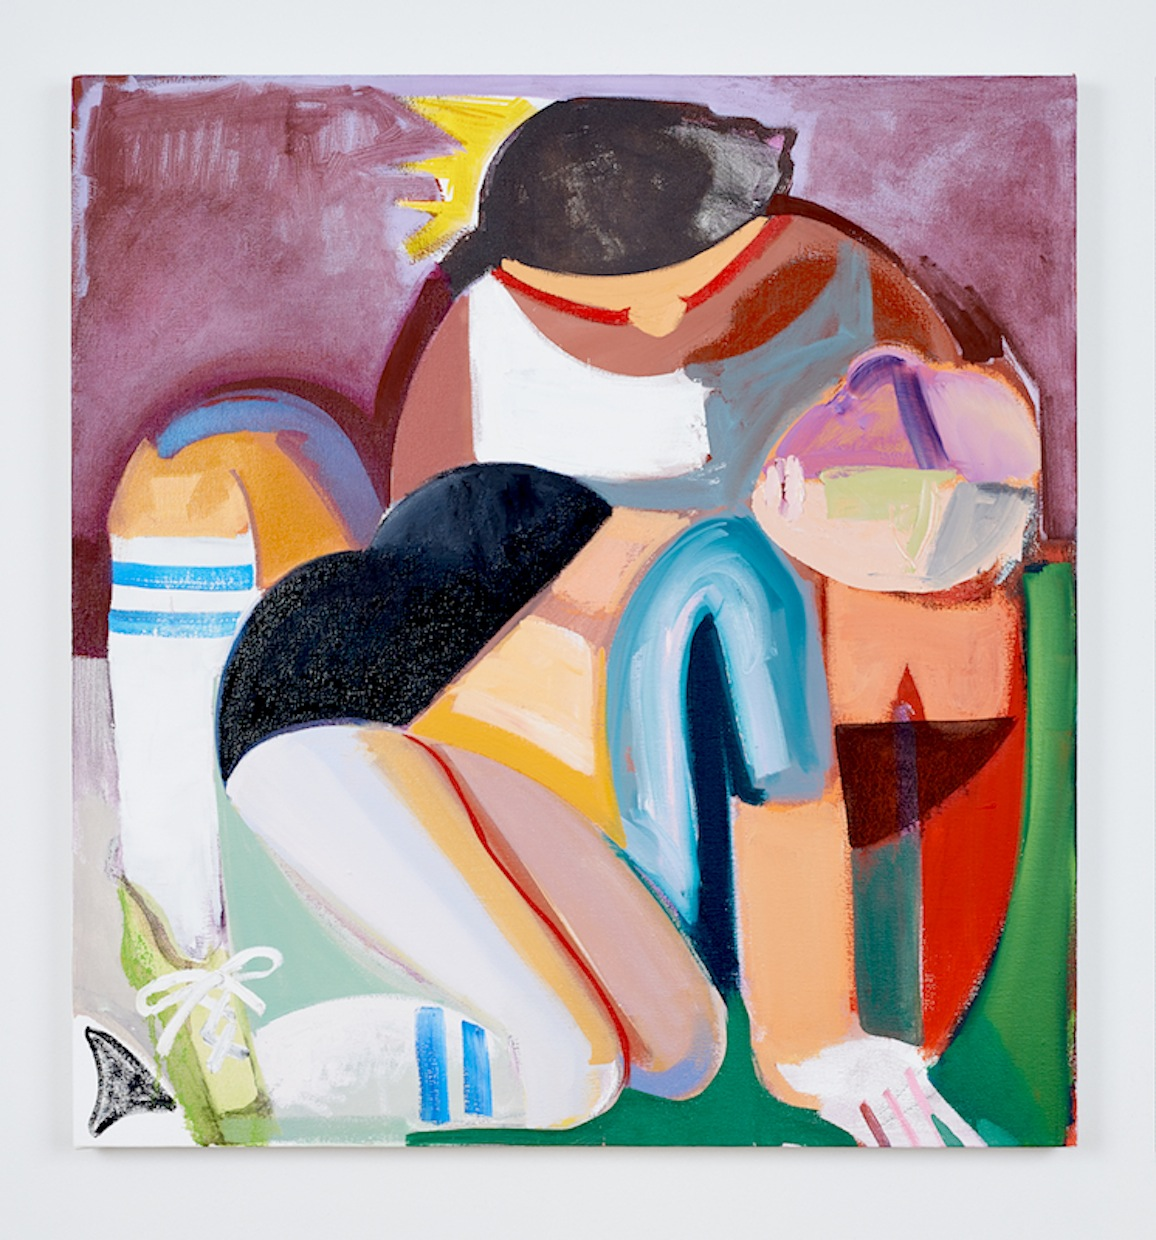 Danielle Orchard,New Best Girl, 2015, oil on canvas 32 x 30 inches